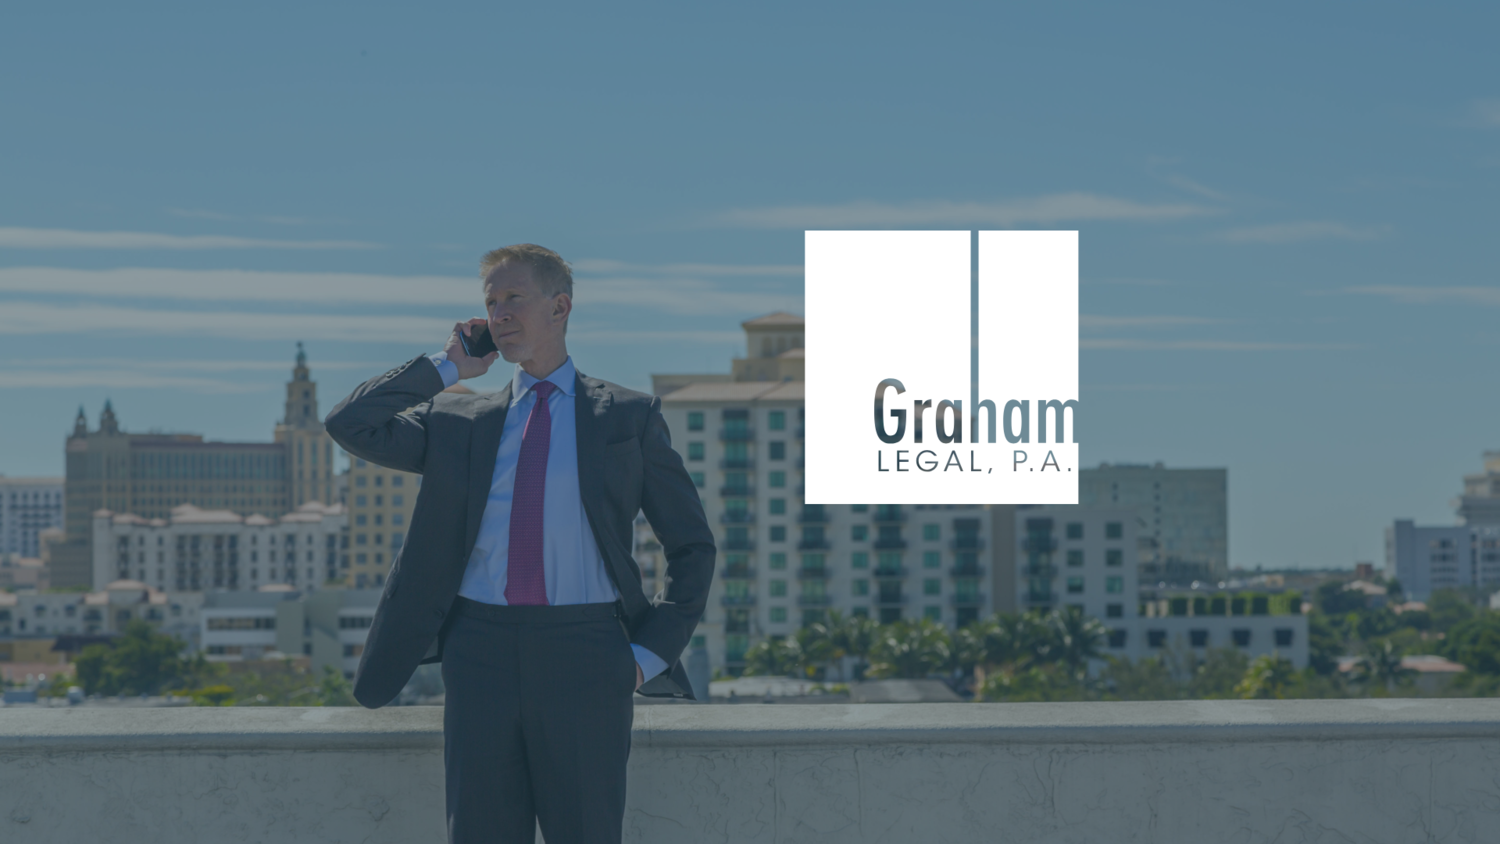 VIEW THE GRAHAM LEGAL CASE STUDY